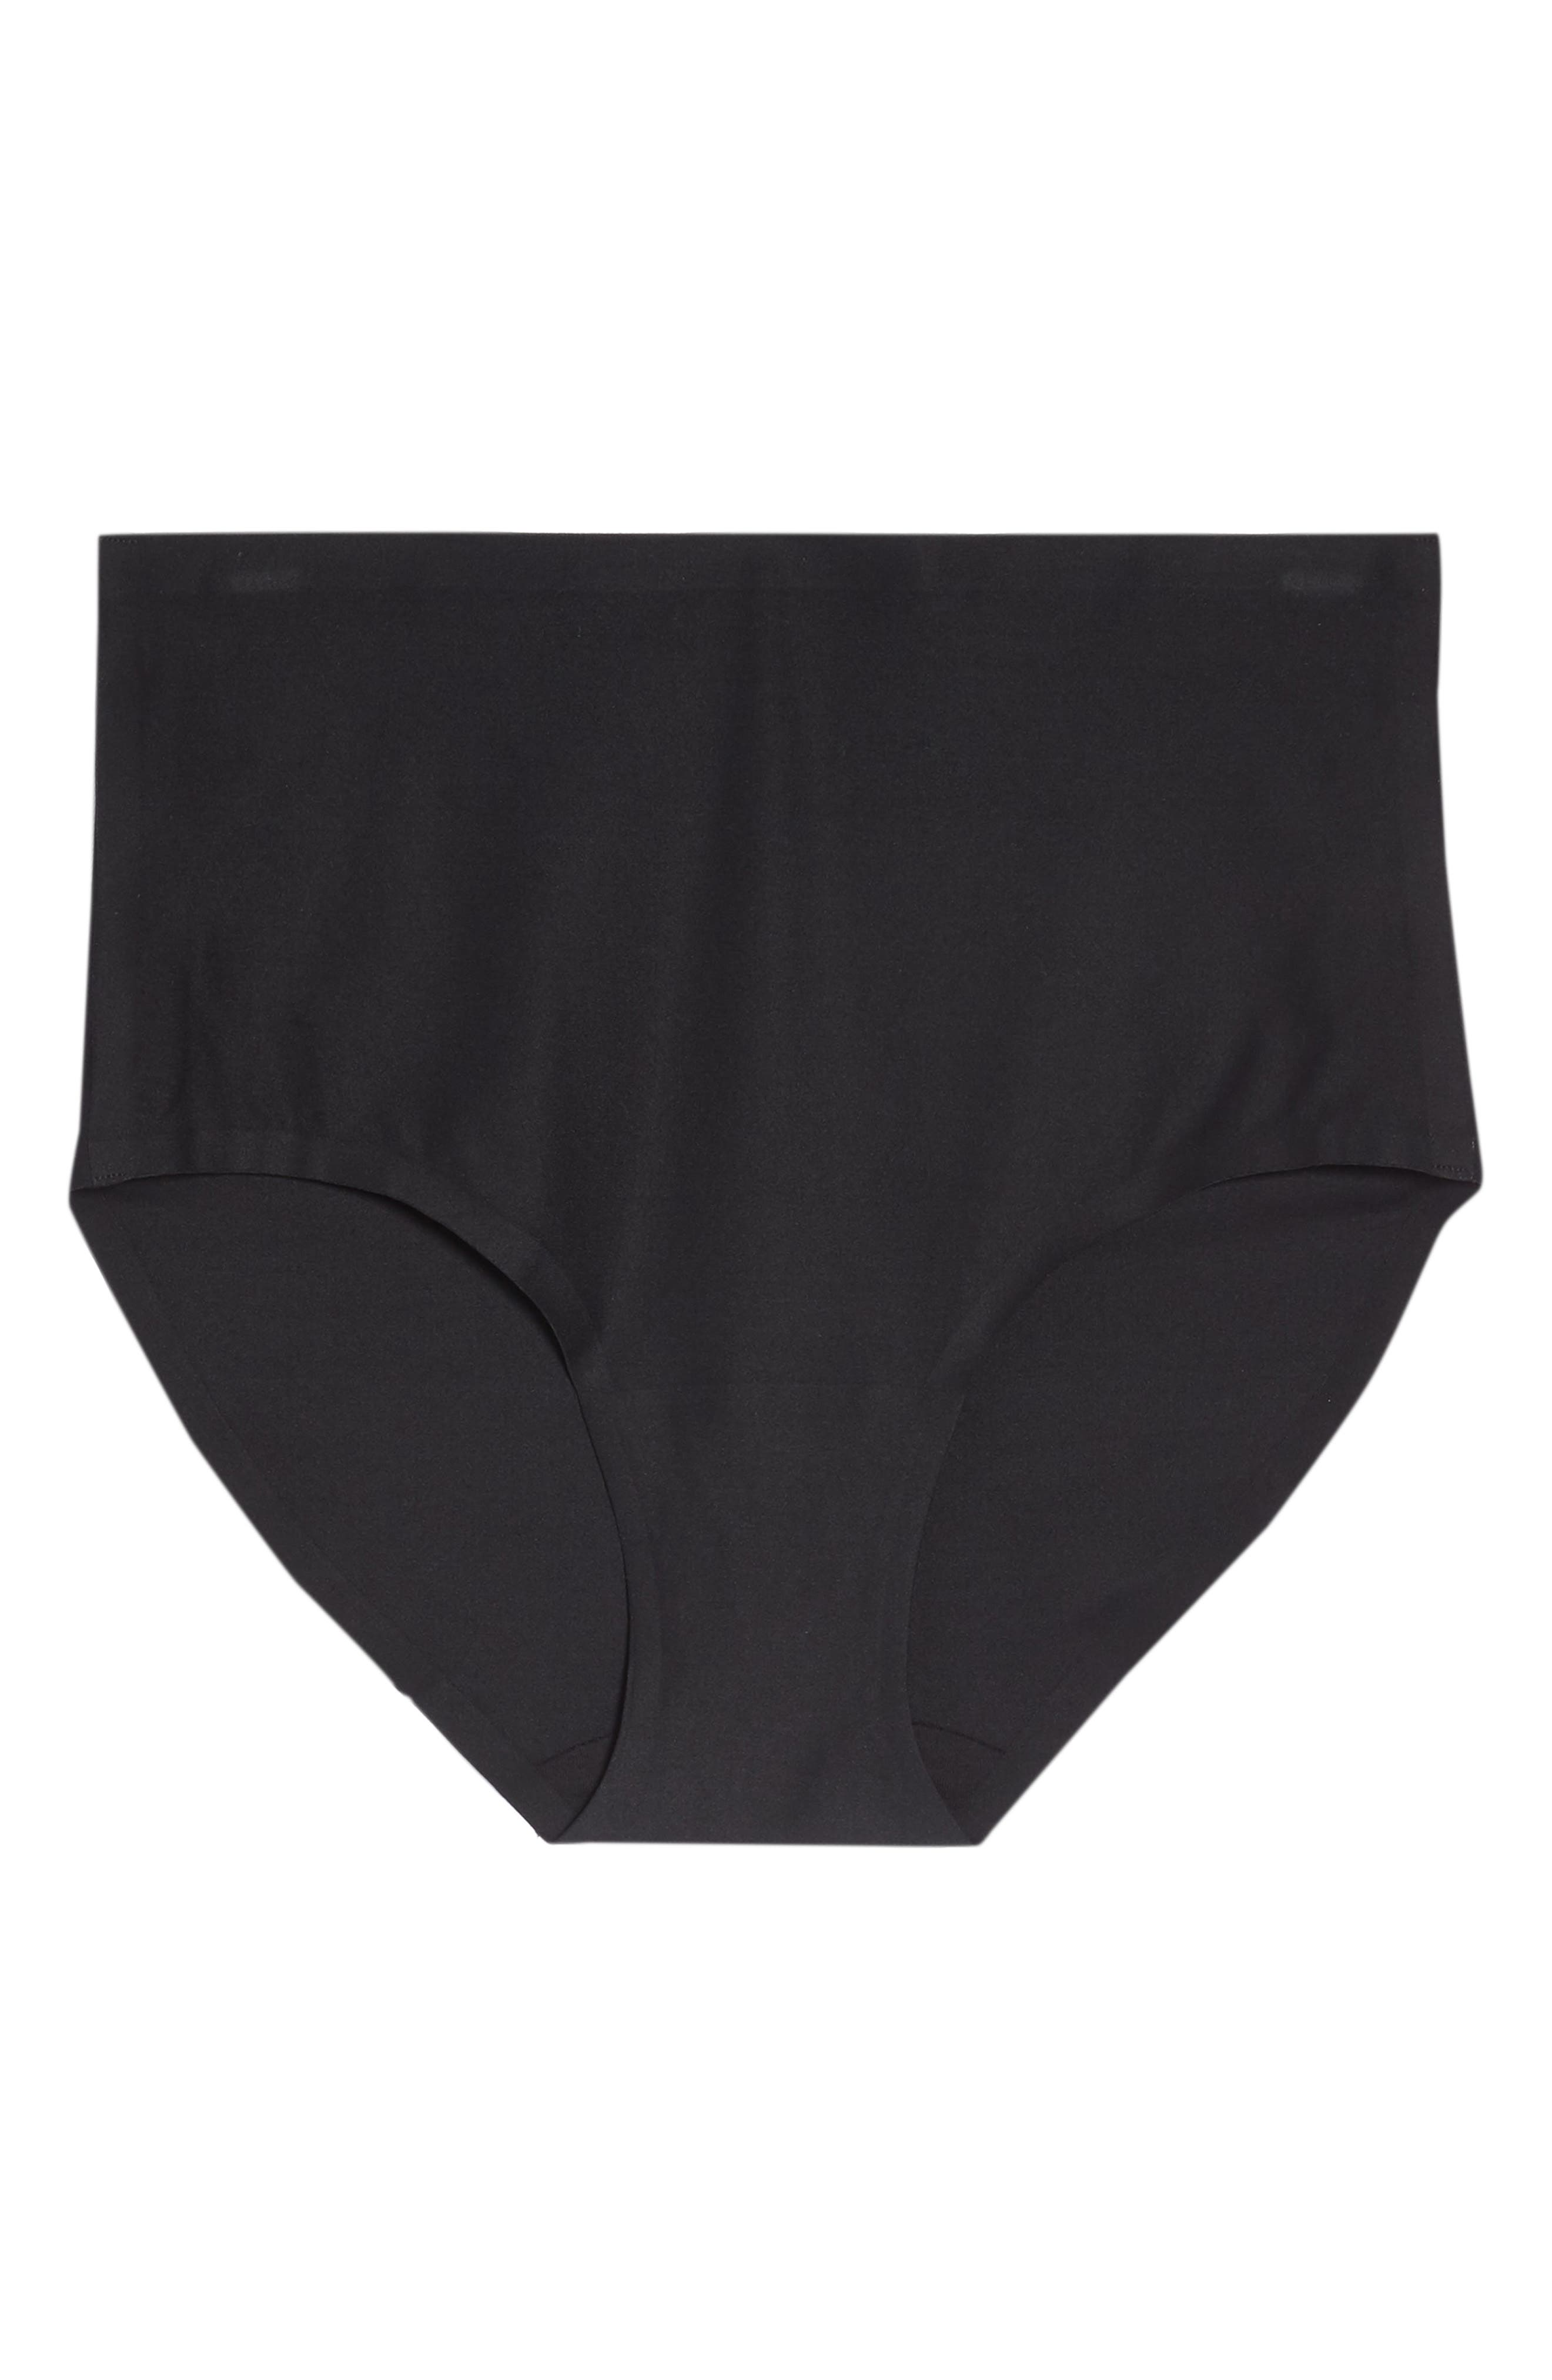 CHANTELLE LINGERIE, Soft Stretch High Waist Seamless Briefs, Alternate thumbnail 6, color, BLACK